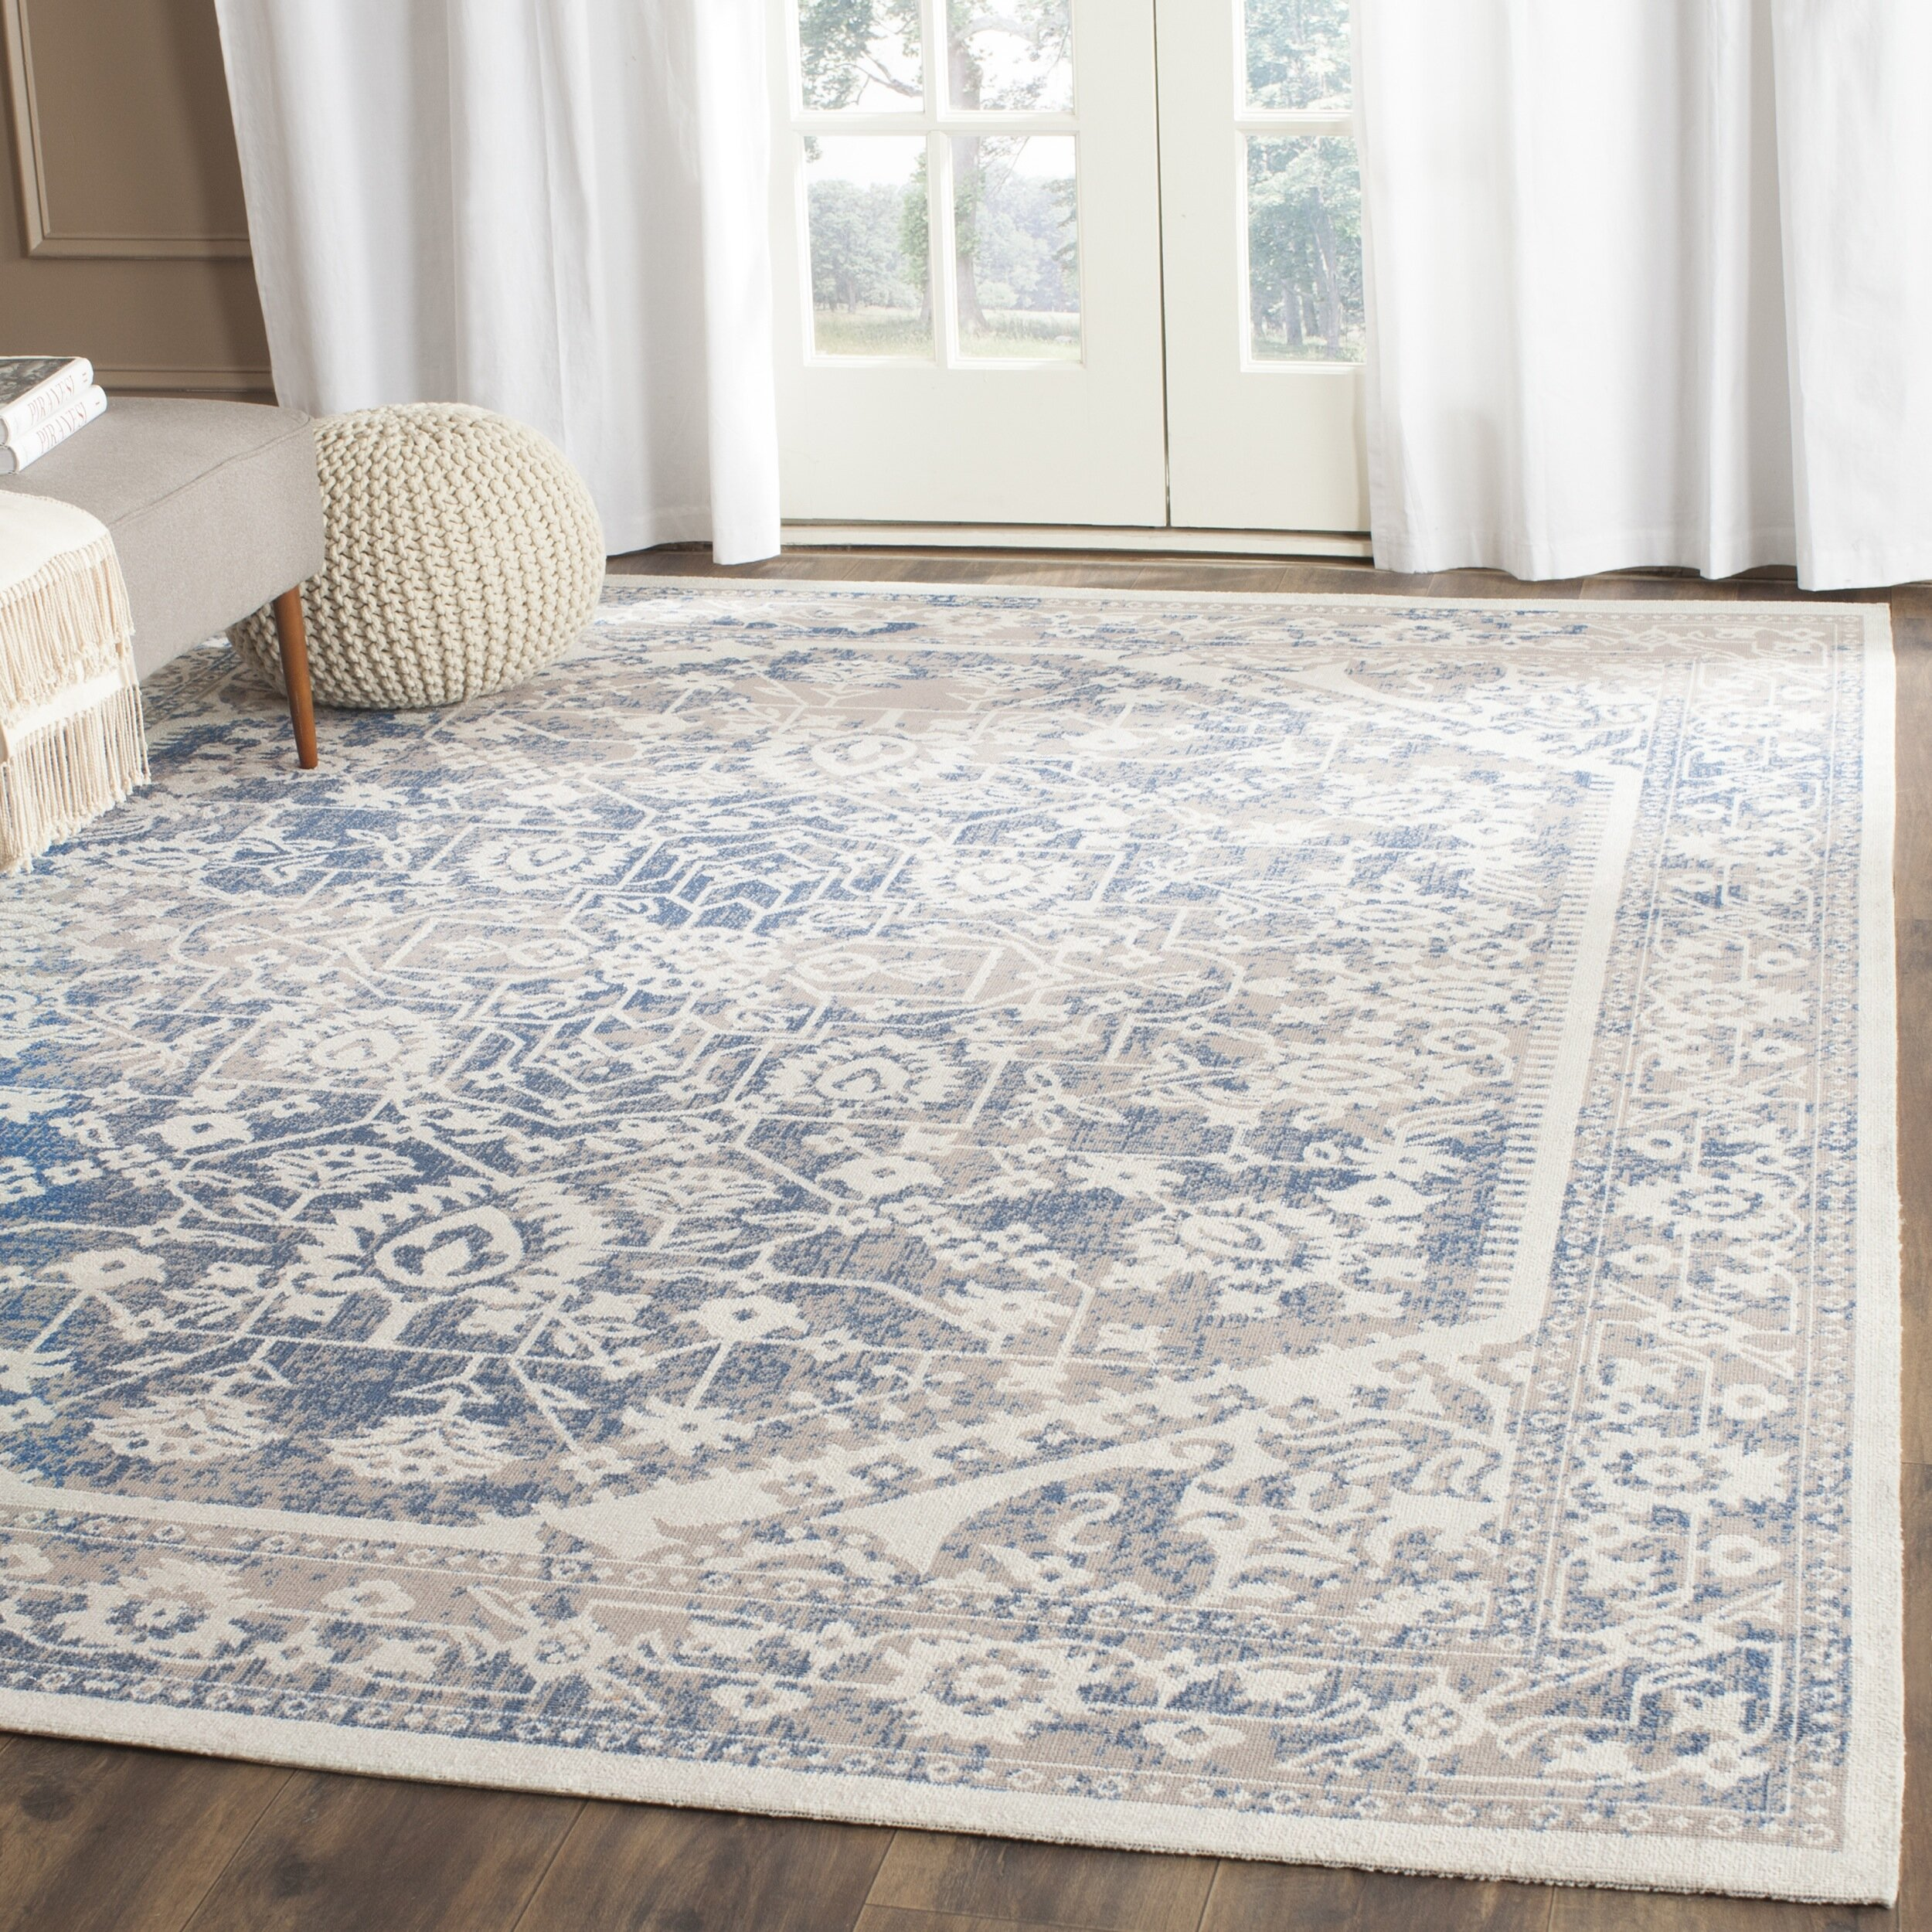 Safavieh Patina Gray/Blue Area Rug & Reviews